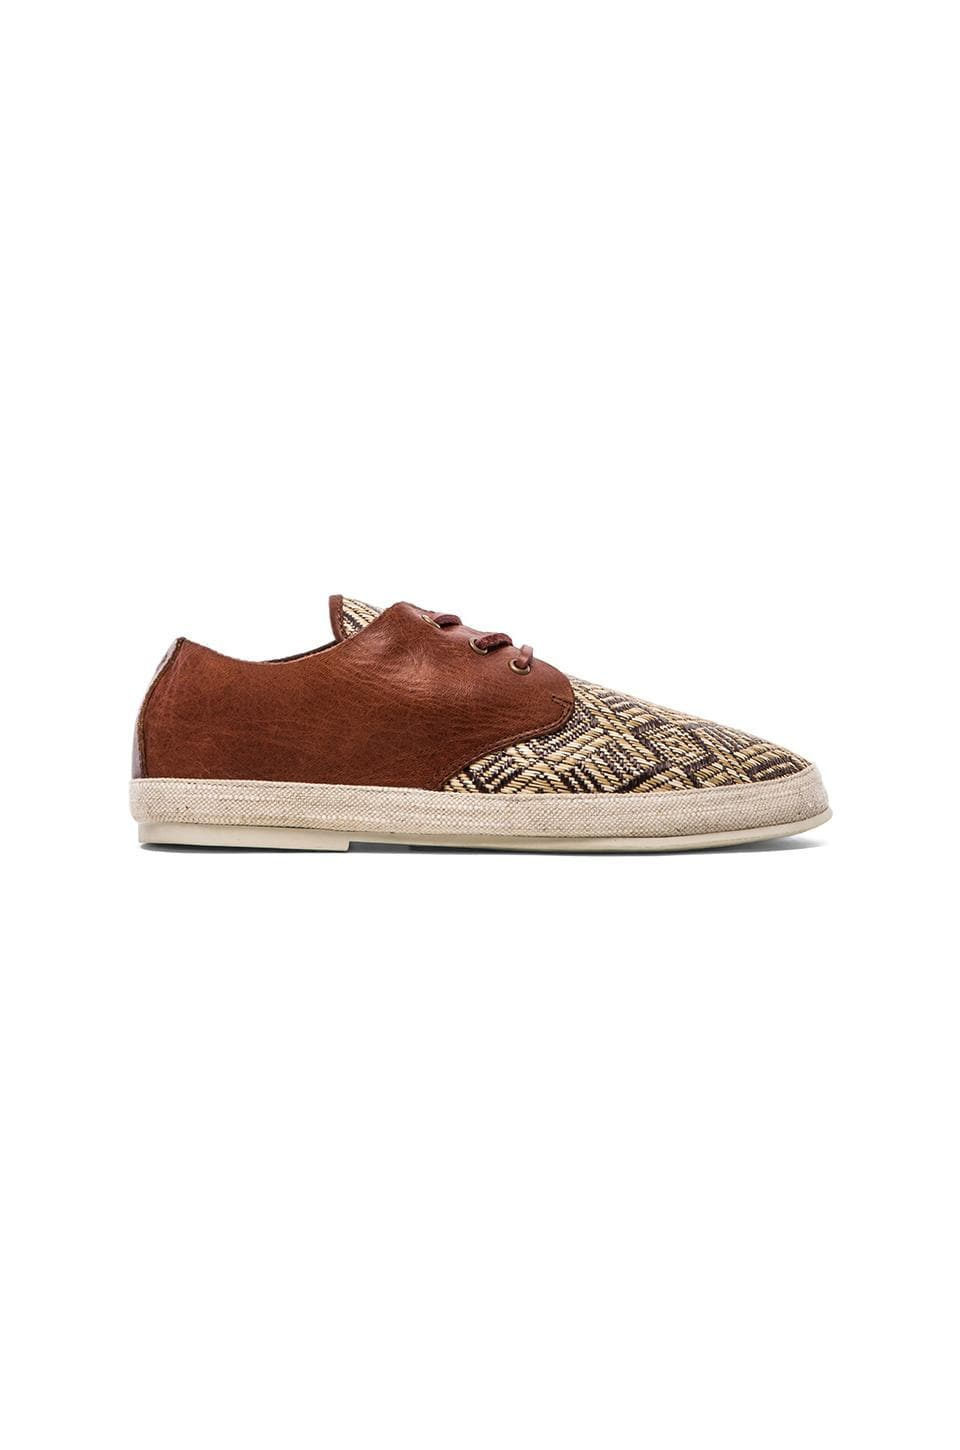 Scotch & Soda Straw Shoe w/ Leather in Brown